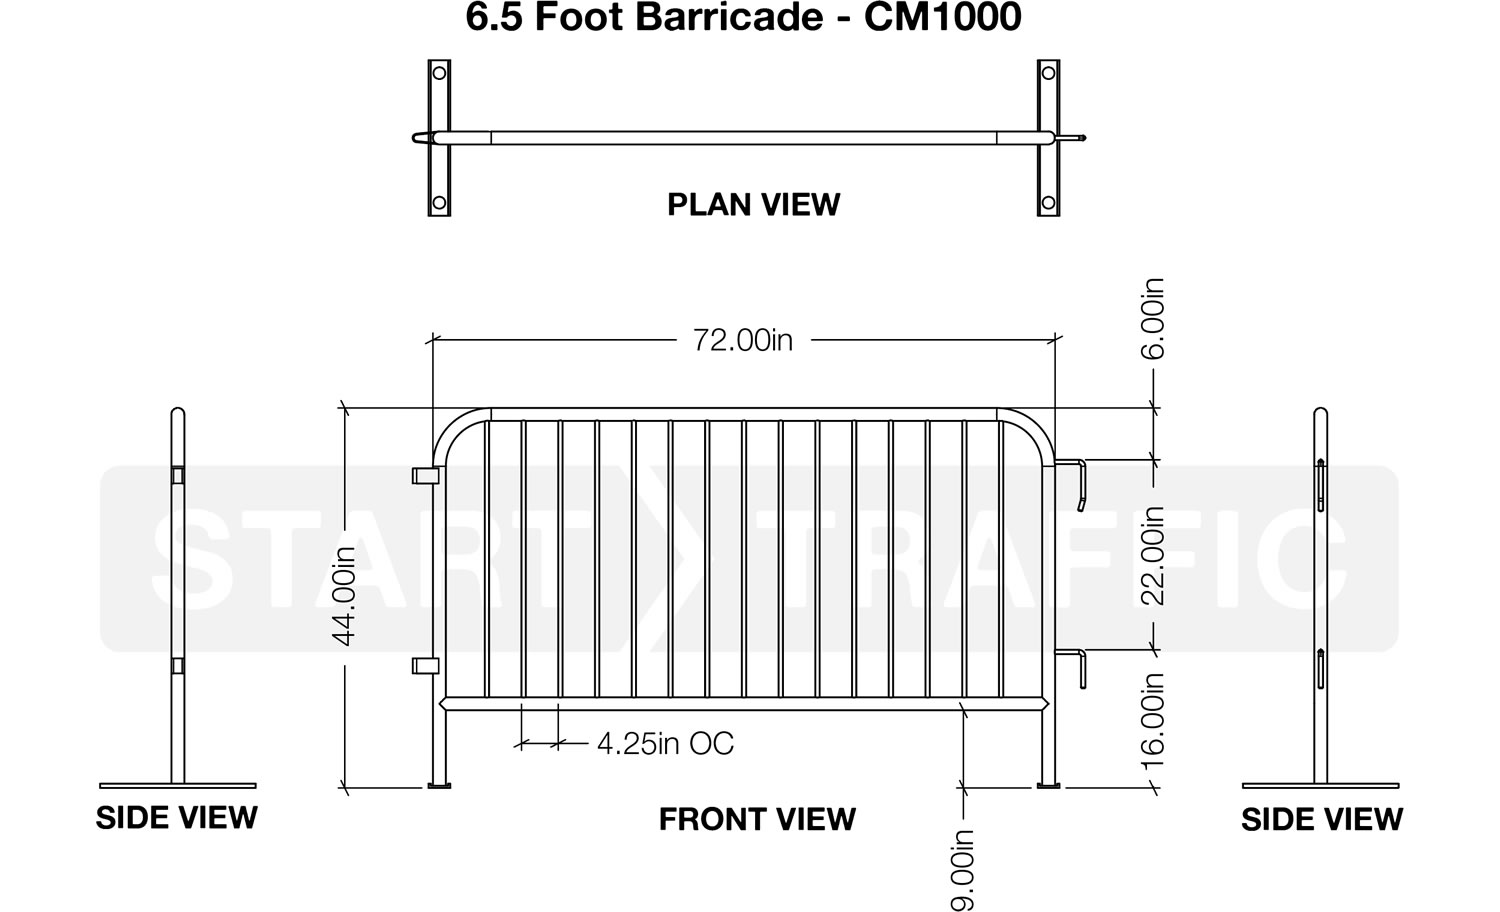 6.5 Foot Metal Barrier Dimensions